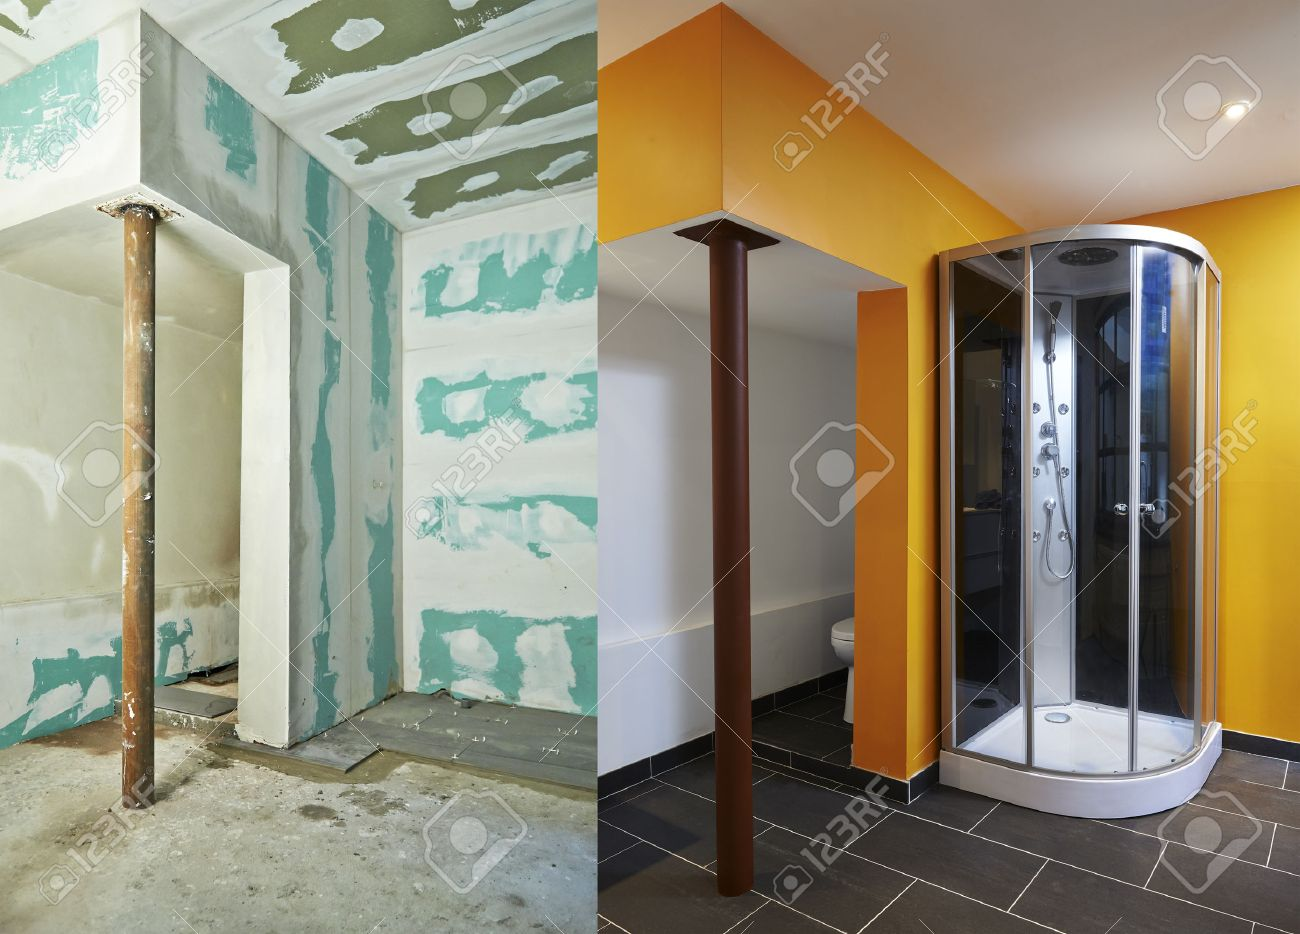 Construction of Drywall-Plasterboard bathroom Before and after Standard-Bild - 22877208